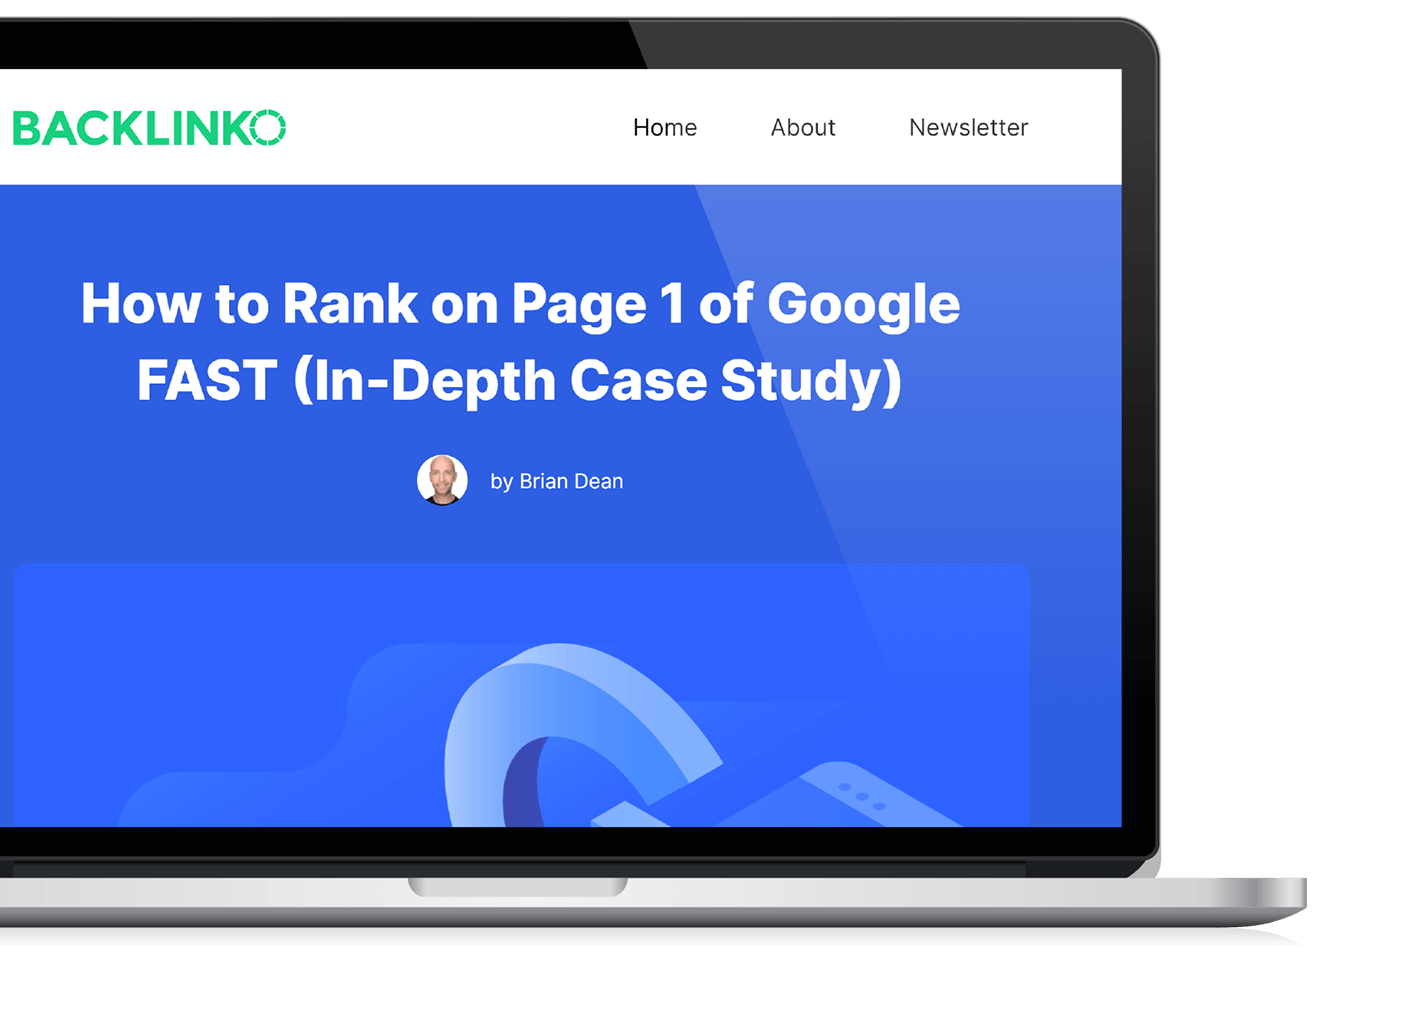 How to Rank on Page 1 of Google FAST (In-Depth Case Study)